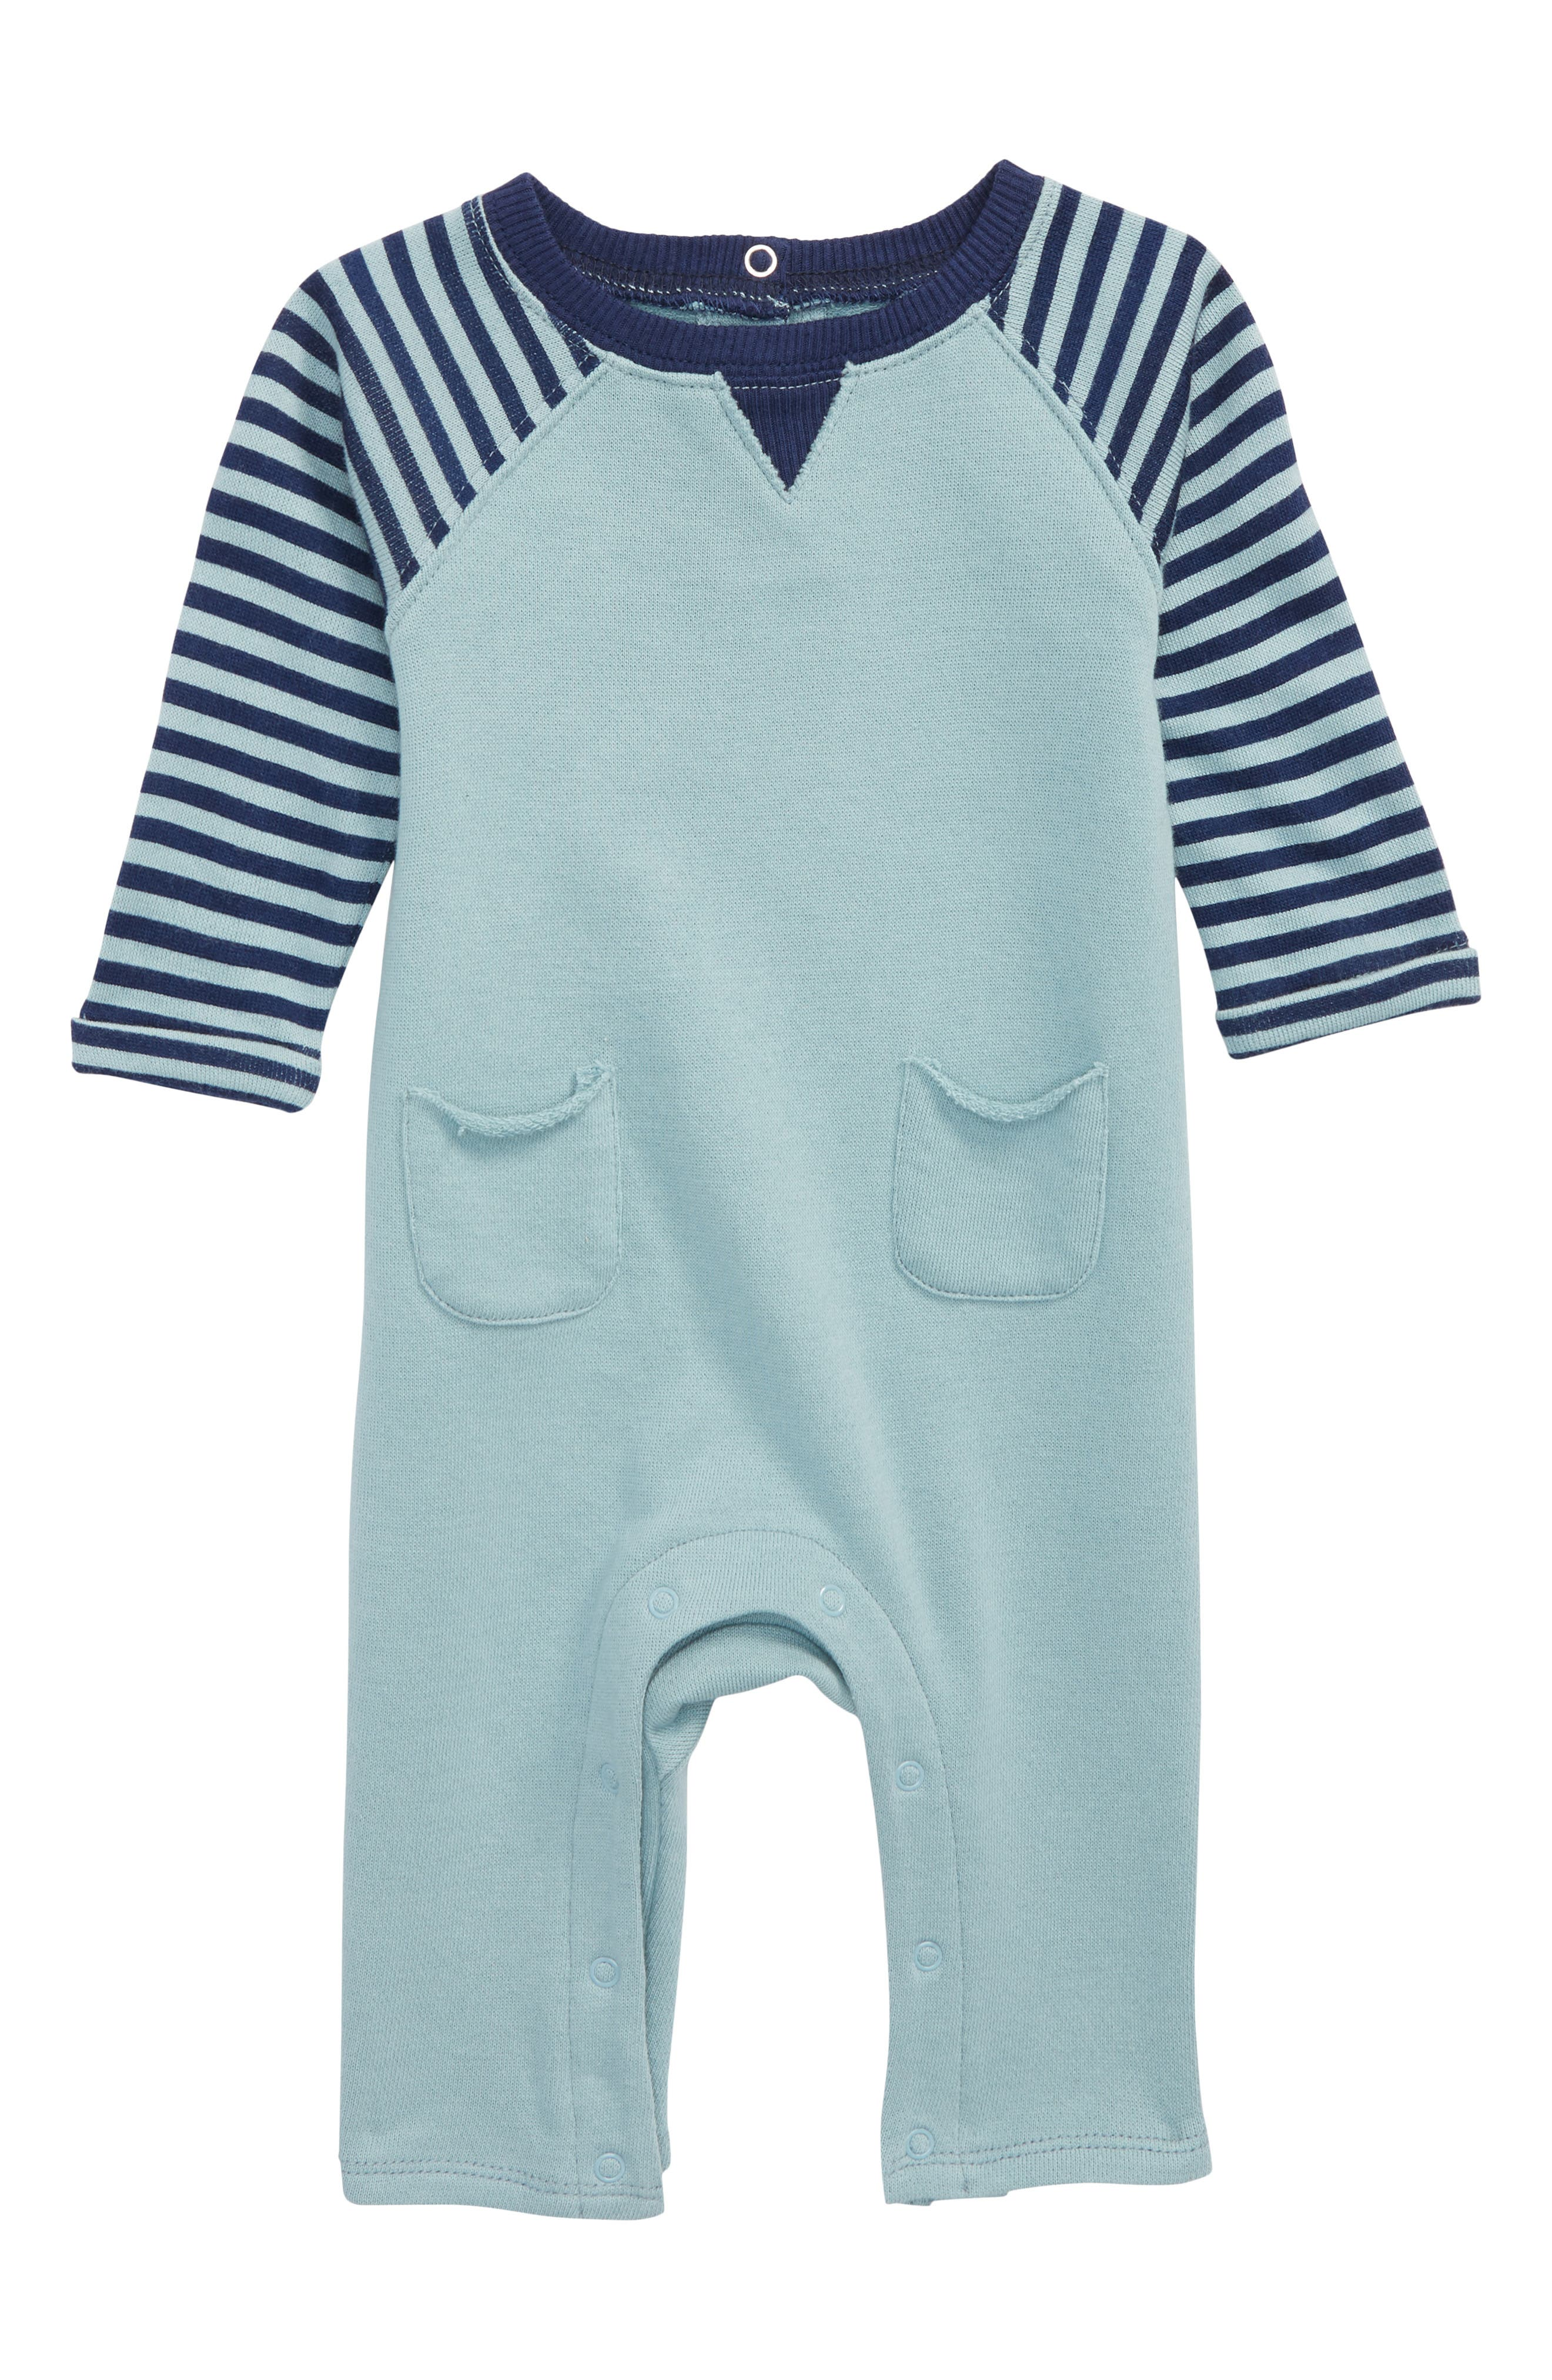 French Terry Romper,                             Main thumbnail 1, color,                             450